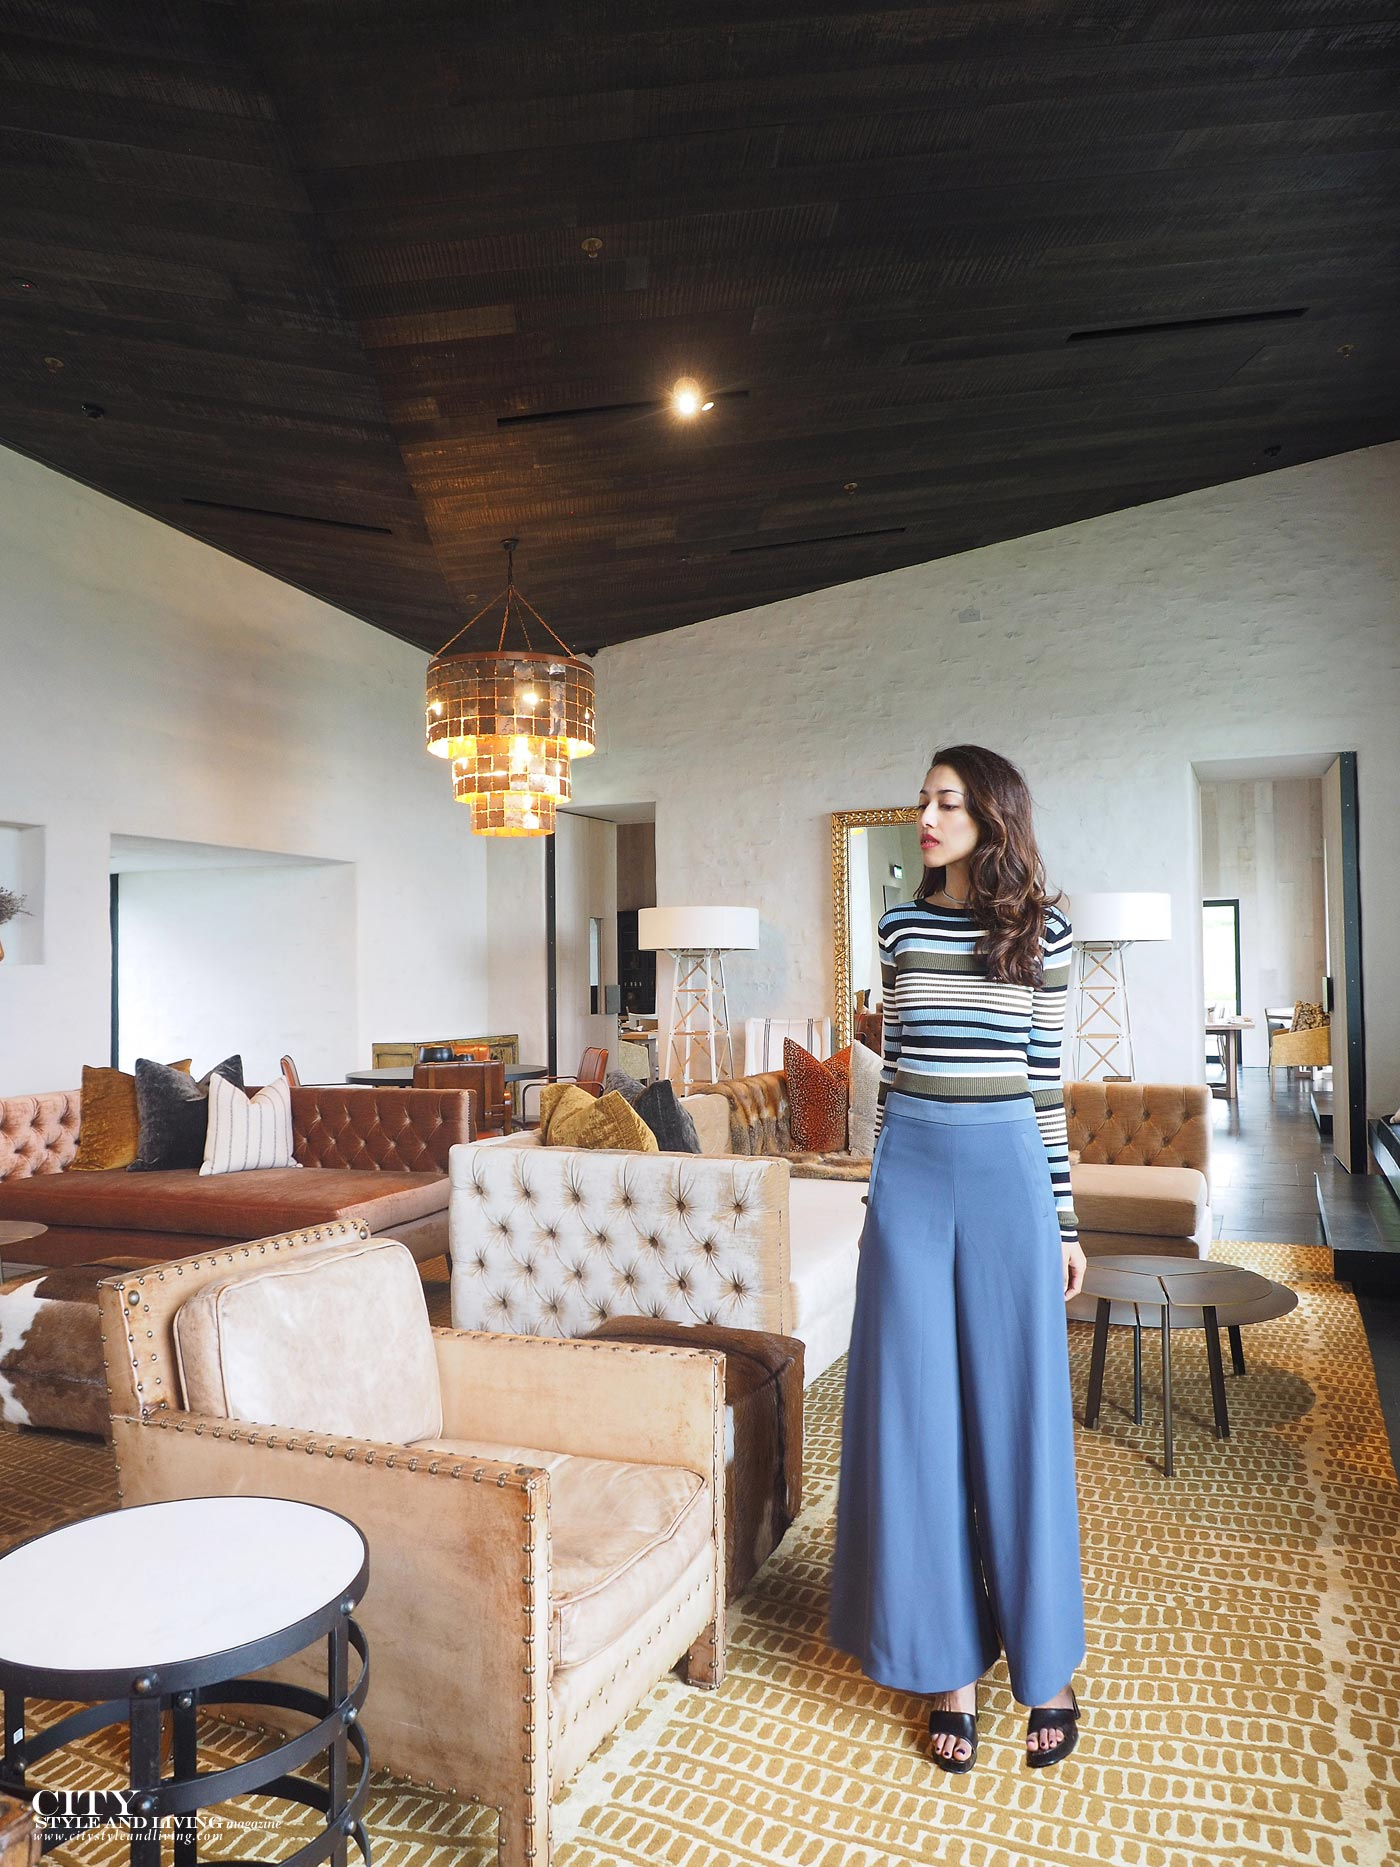 City style and living magazine Editors Notebook style fashion blogger Shivana M kinloch club clubhouse great room culottes and striped croptop